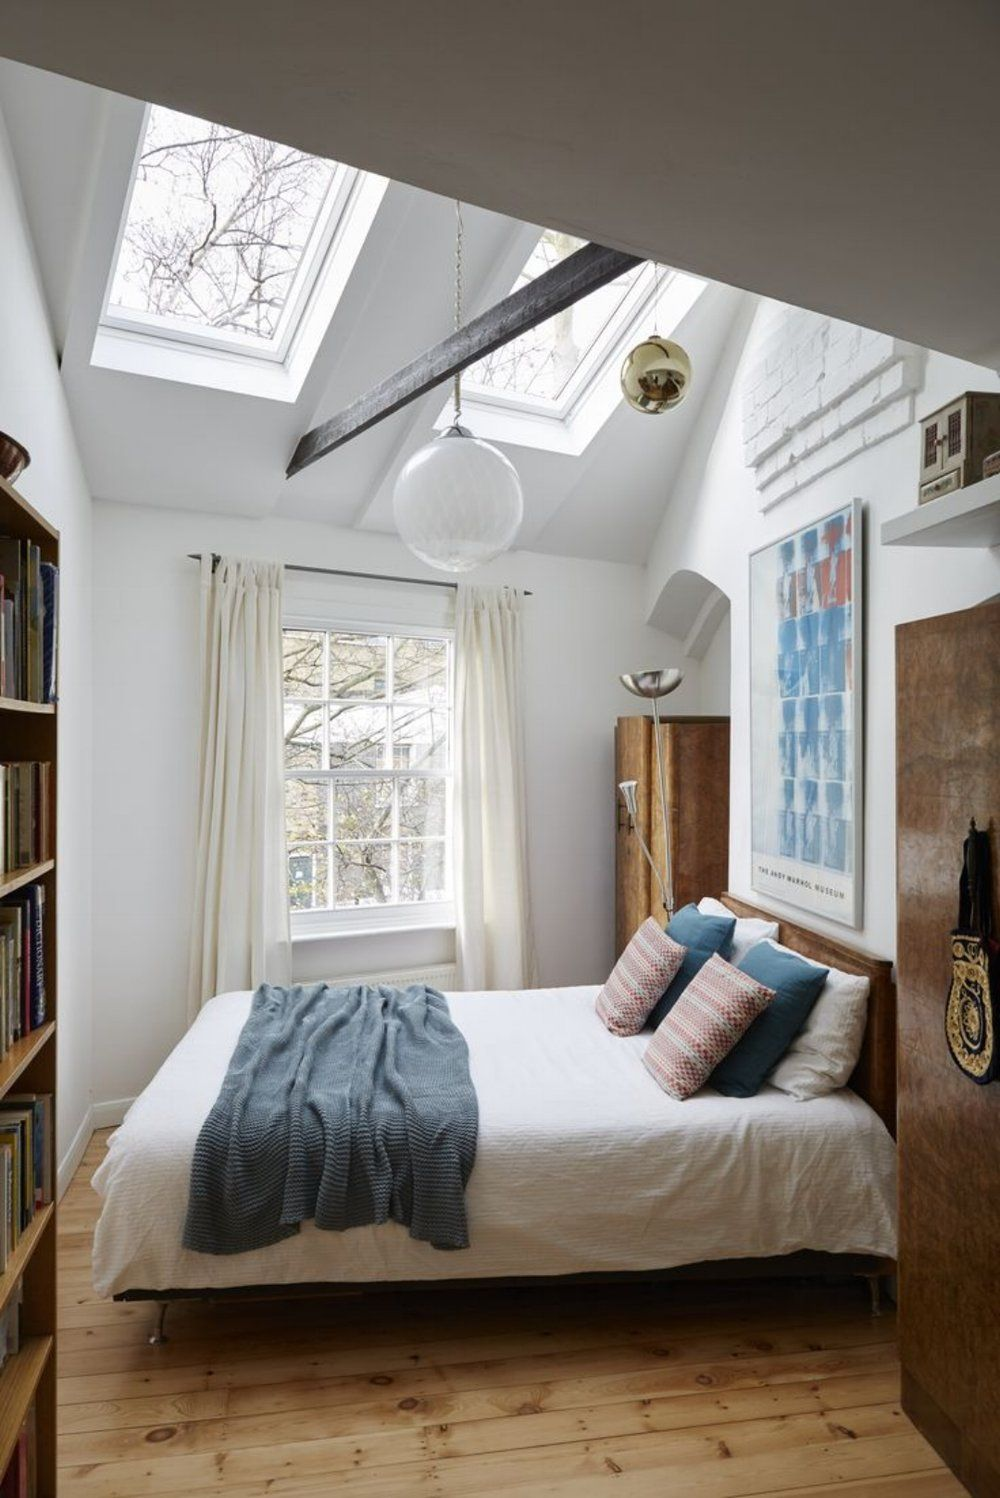 Natural Bedroom On Pinterest Natural Bed Sets Nature Bedroom And Simple Bedroom Decor Eclectic Bedroom Attic Bedroom Designs Home Decor Bedroom